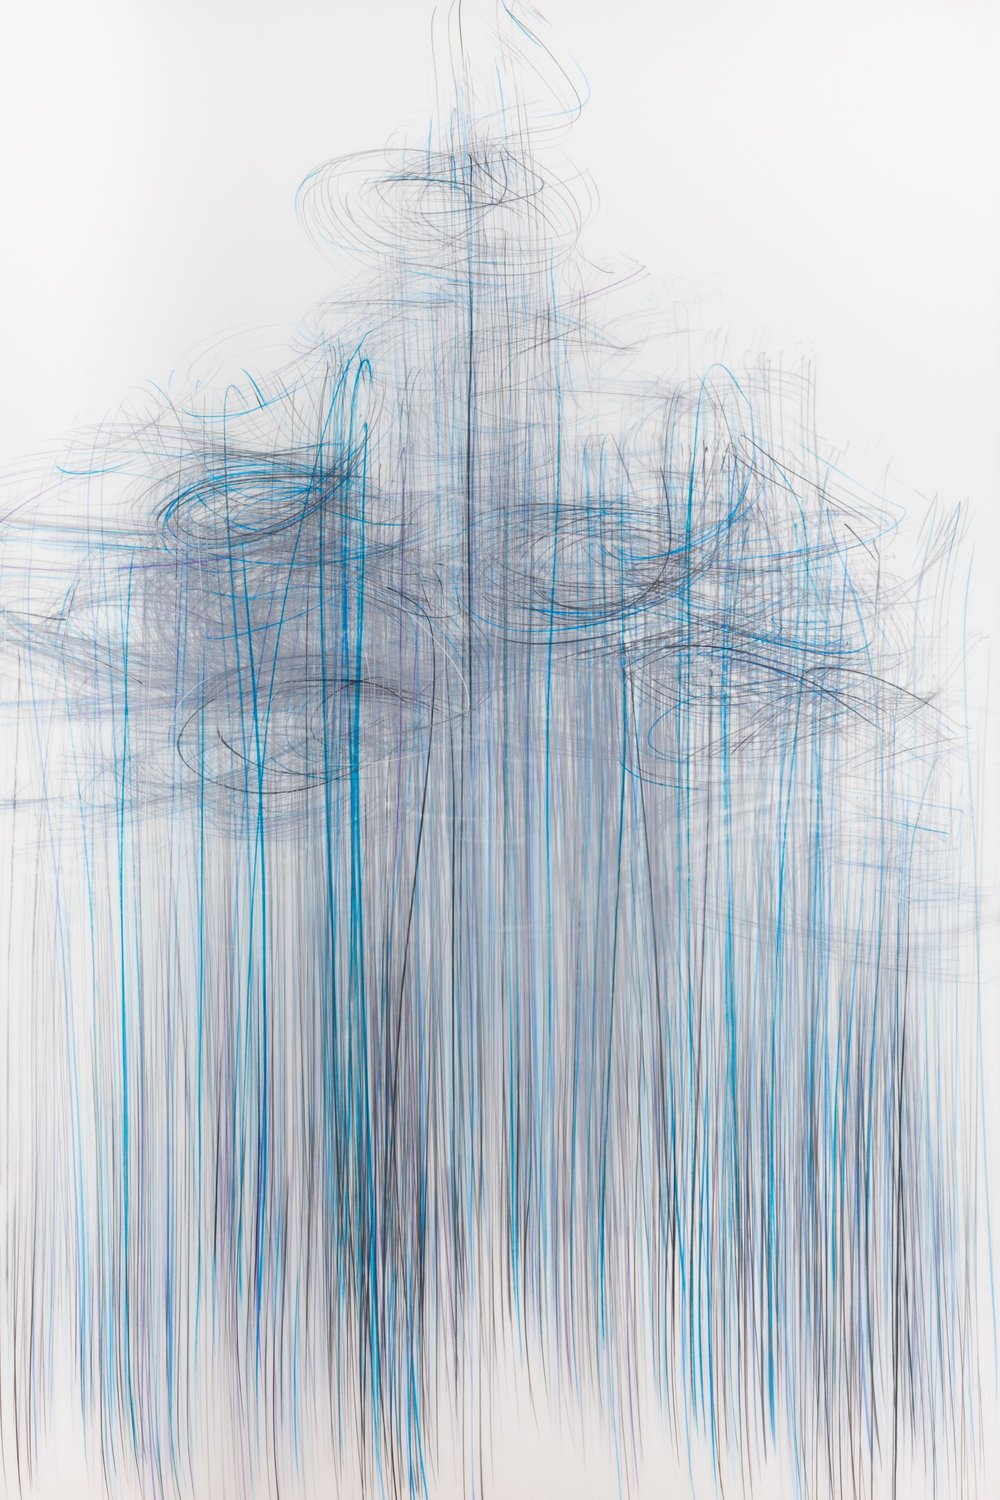 Jaanika Peerna  Thaw Series 1 , 2017 graphite and colored pencil on two layers of Mylar 54 x 36 in.